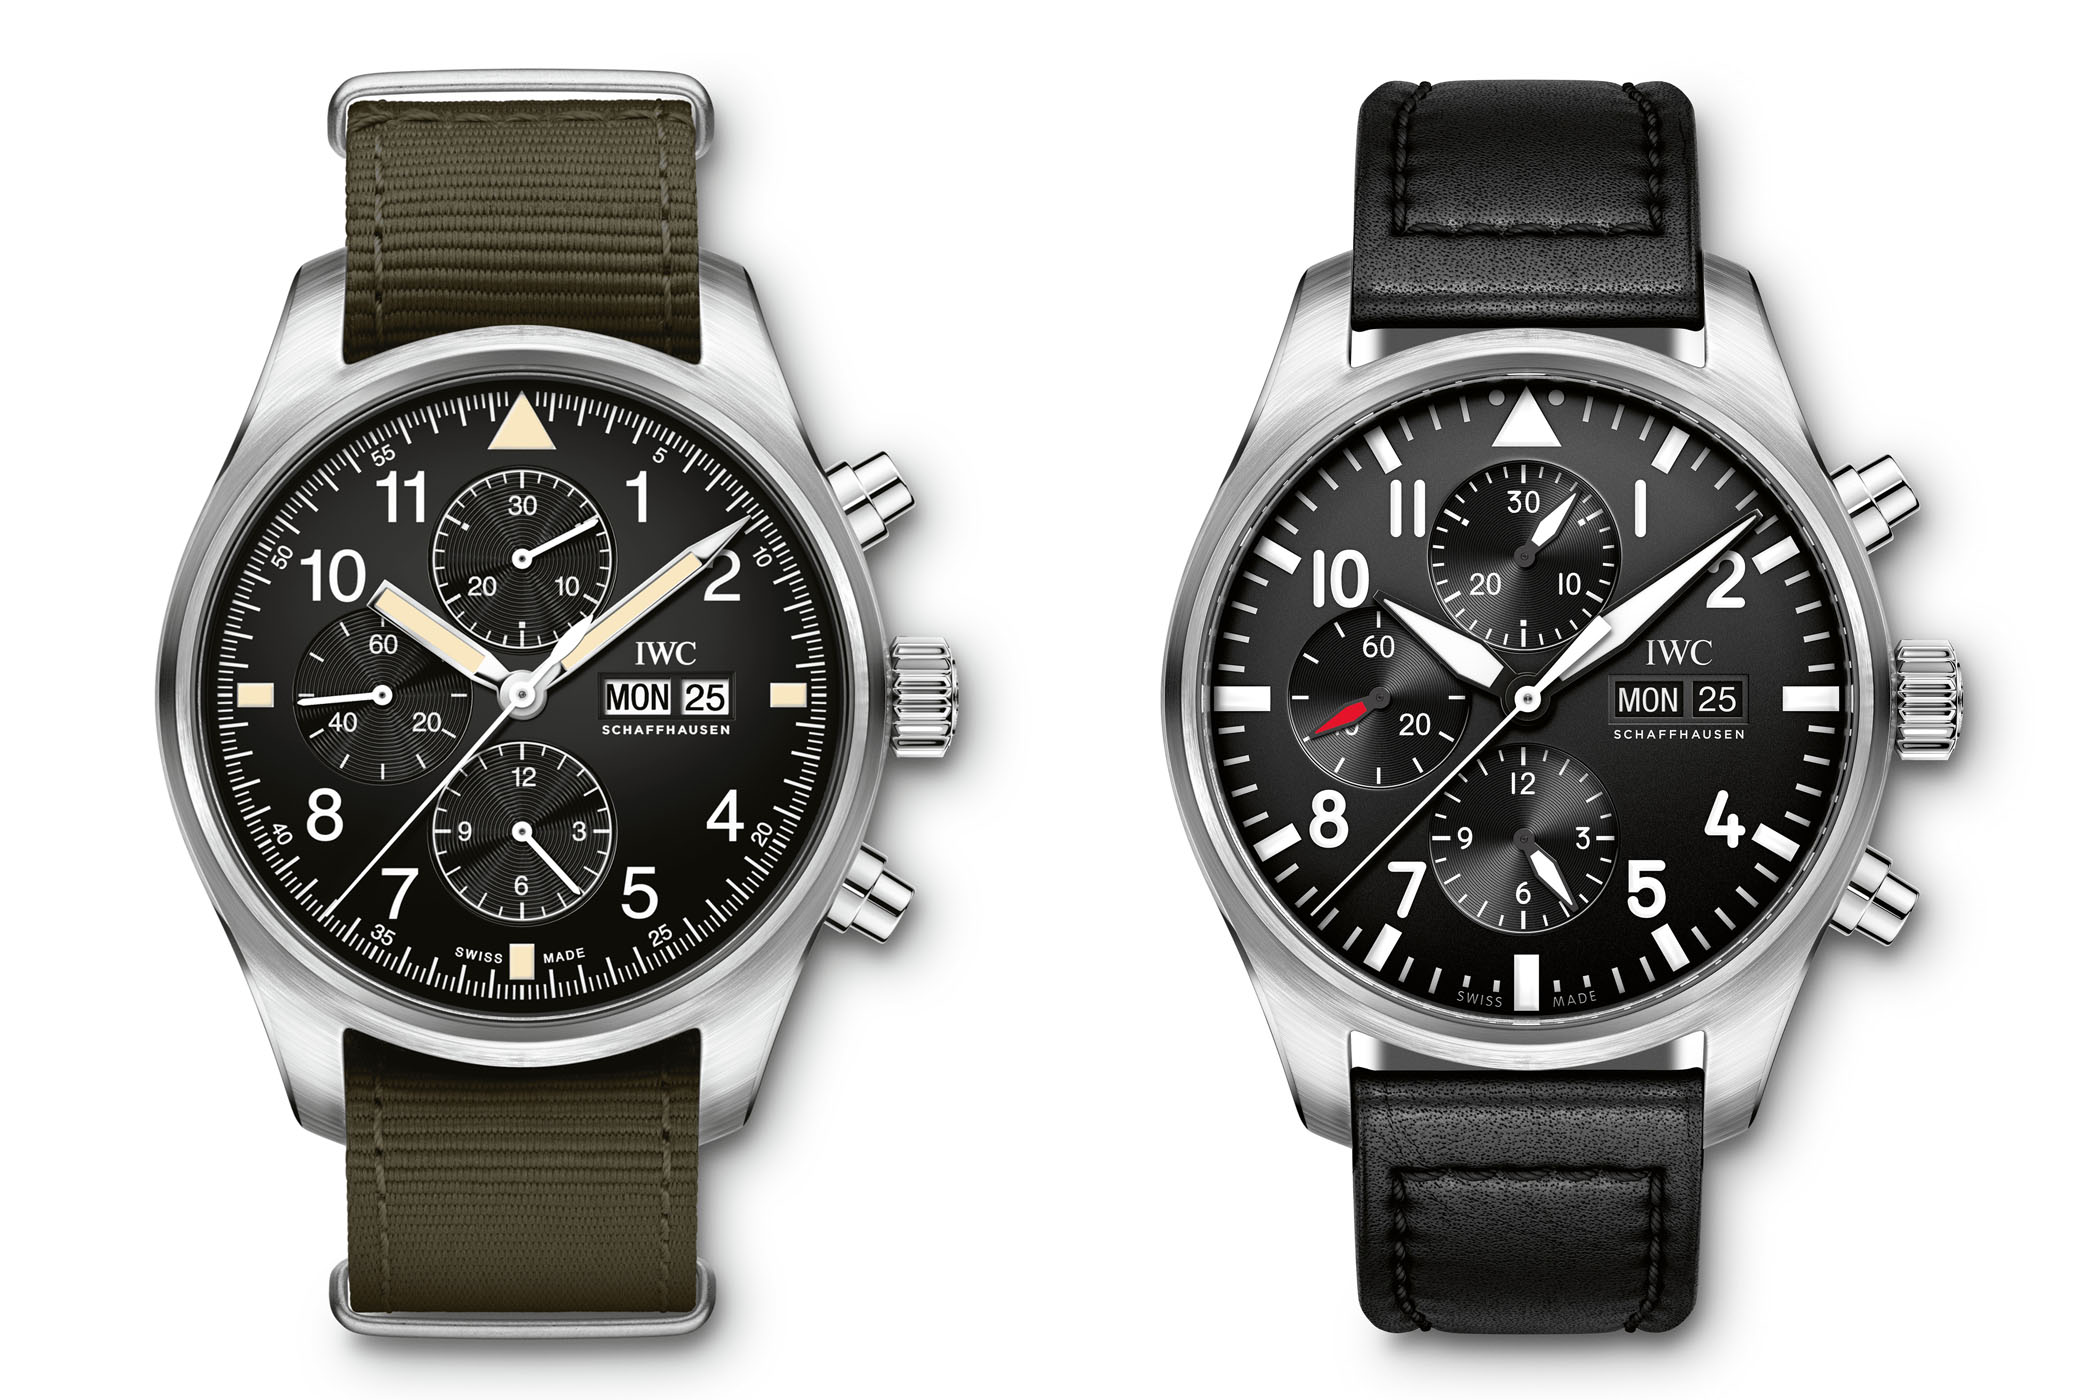 IWC Pilots Watch Chronograph IW377724 vs IW377709